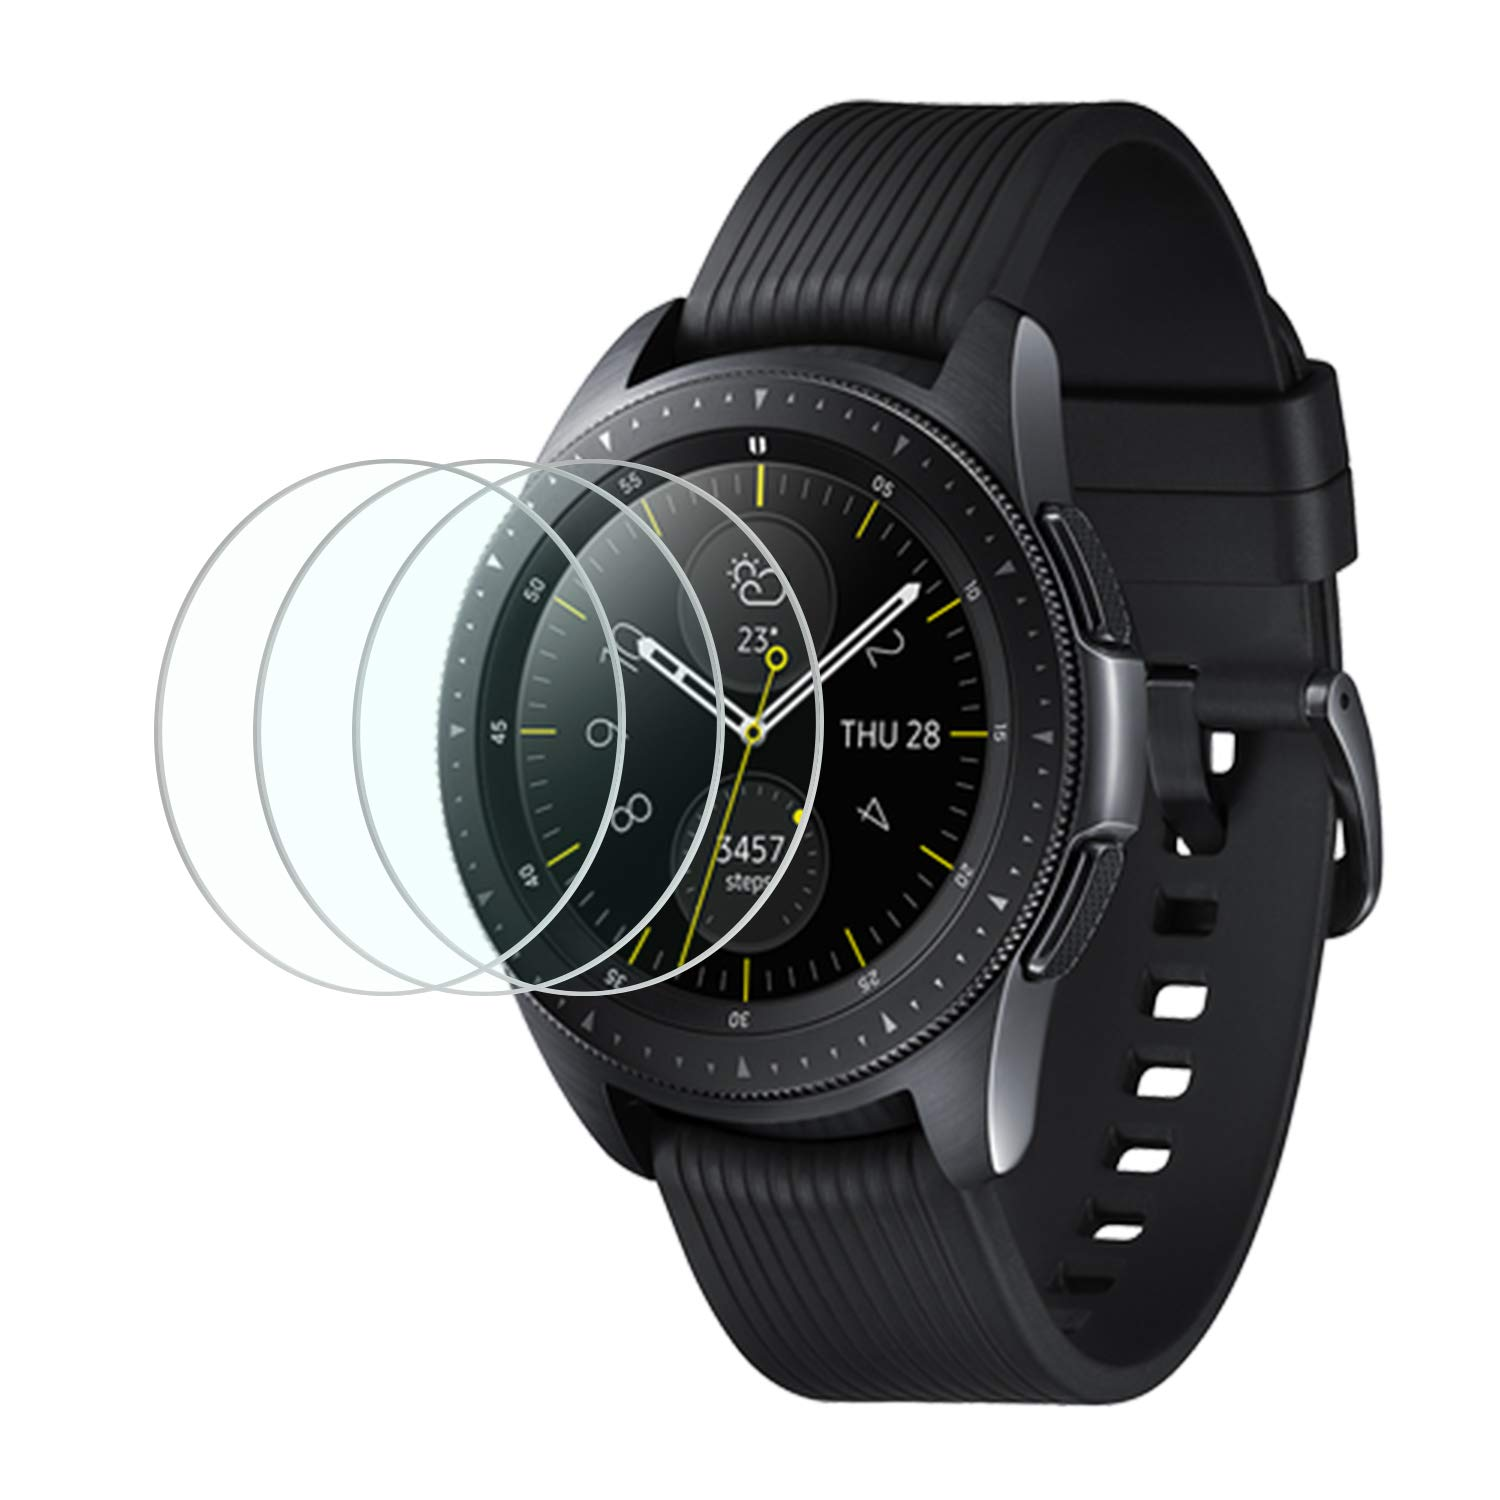 Vidrio Protector para Galaxy Watch 42mm x3 MENEEA -7GFCJCBV